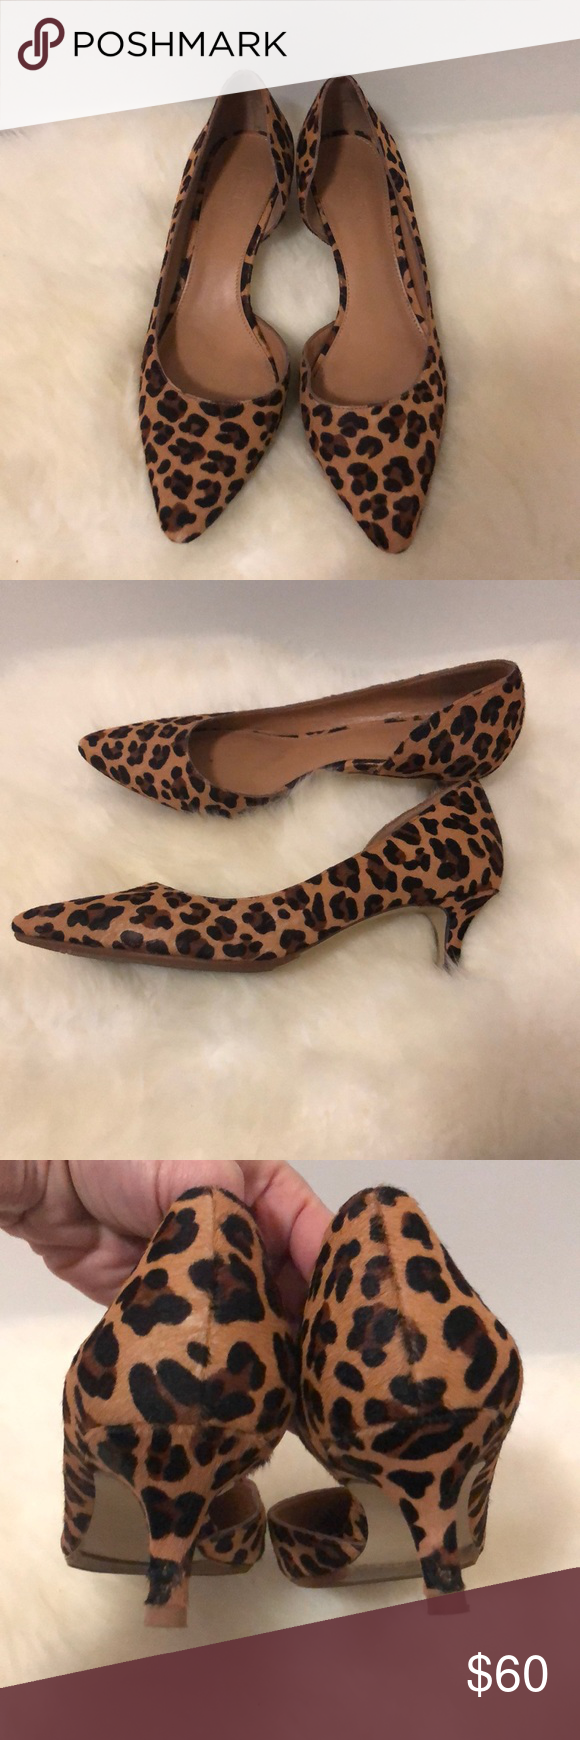 e23a8452c373 J Crew Leopard Calf hair kitten heels Classic J Crew calfhair leopard print  kitten heels. Some wear on heels and pointed tips. Work a few times